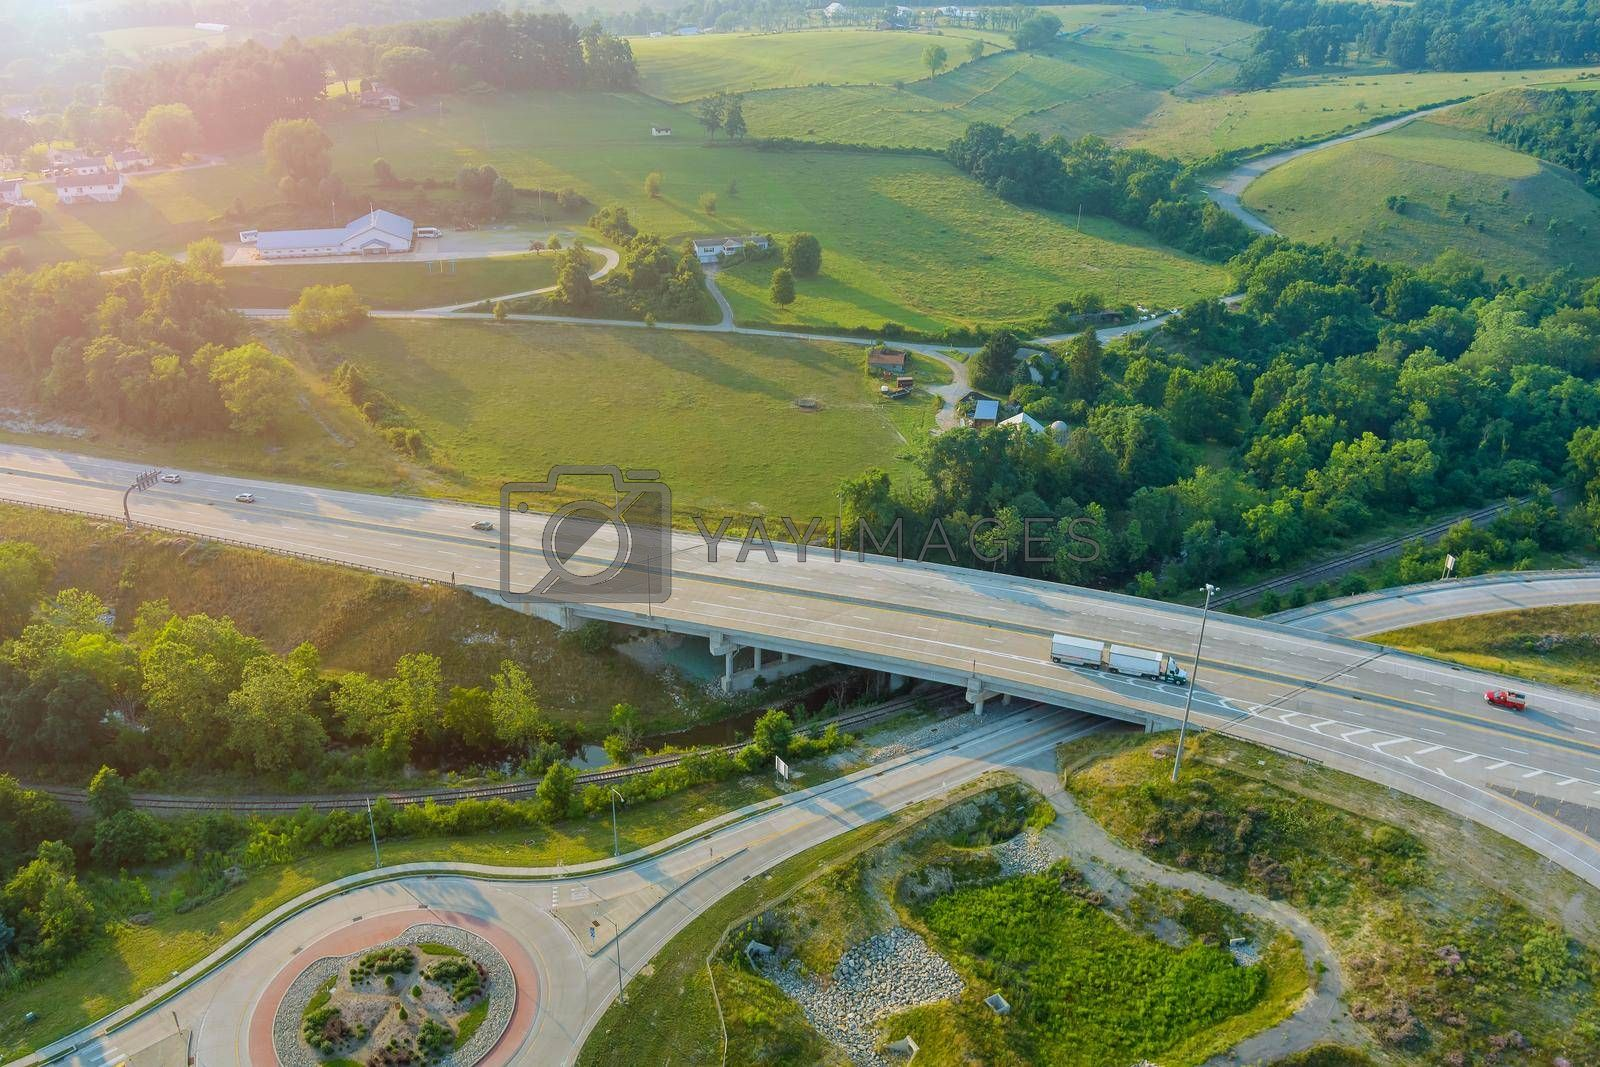 Royalty free image of Aerial view of 70 road the Dwight D. Eisenhower highway near farm farmland in Bentleyville town in Pennsylvania US by ungvar